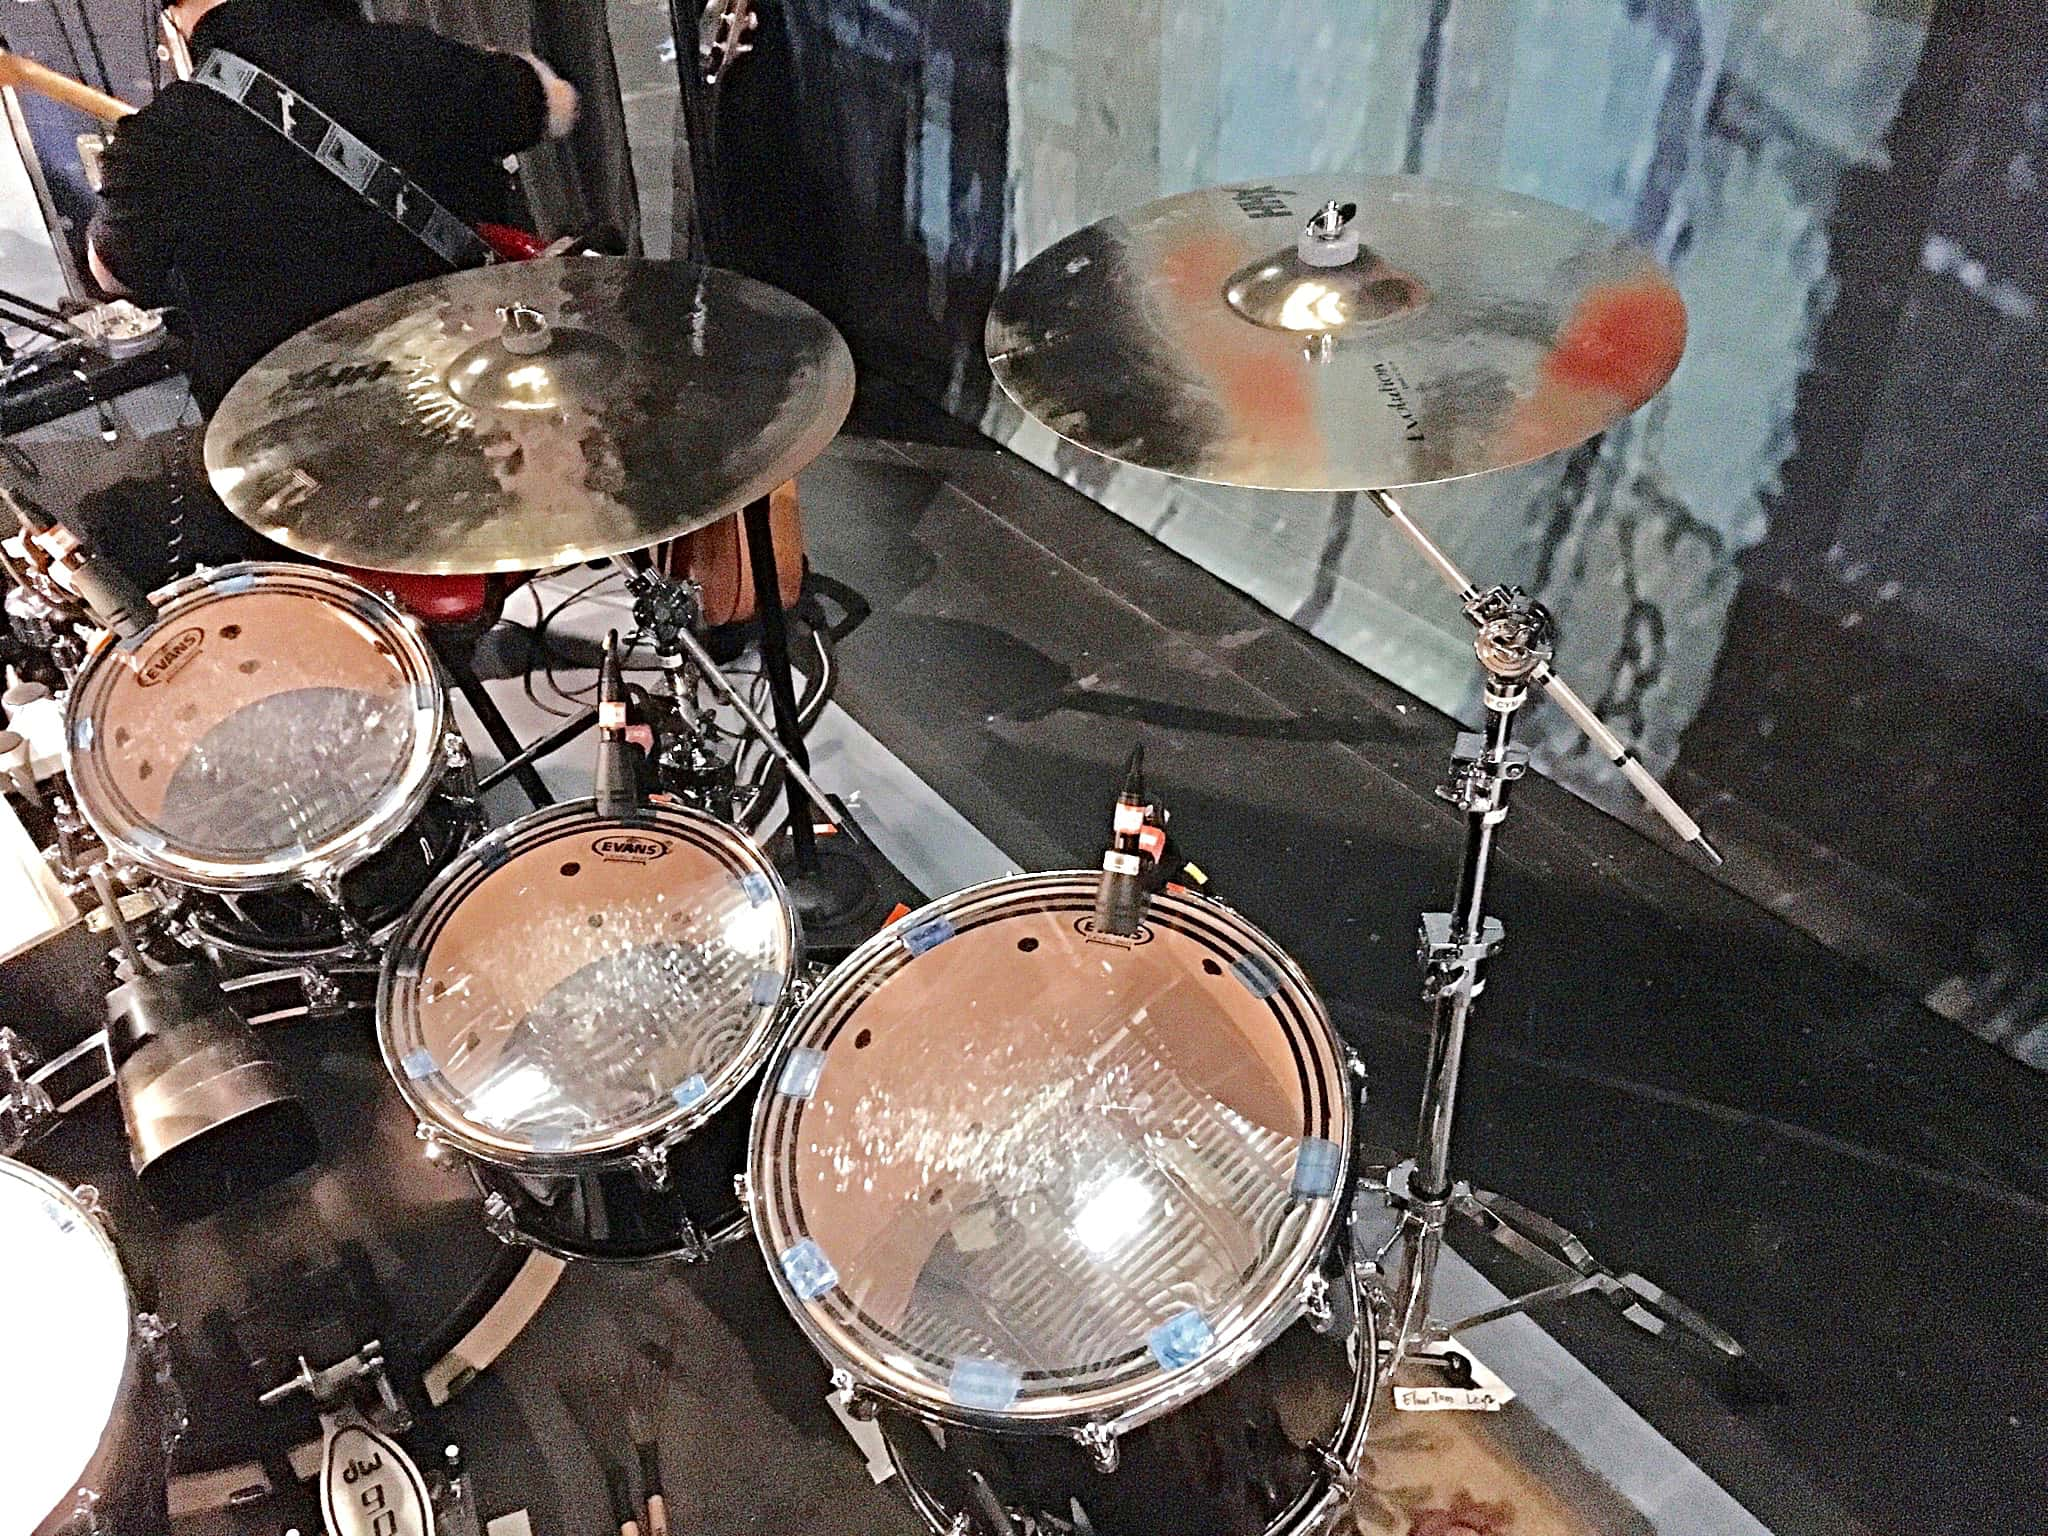 Brett Beirsdorfer's drum set setup for the National Tour of Fame at the Eisenhower Hall Theatre in West Point, New York.